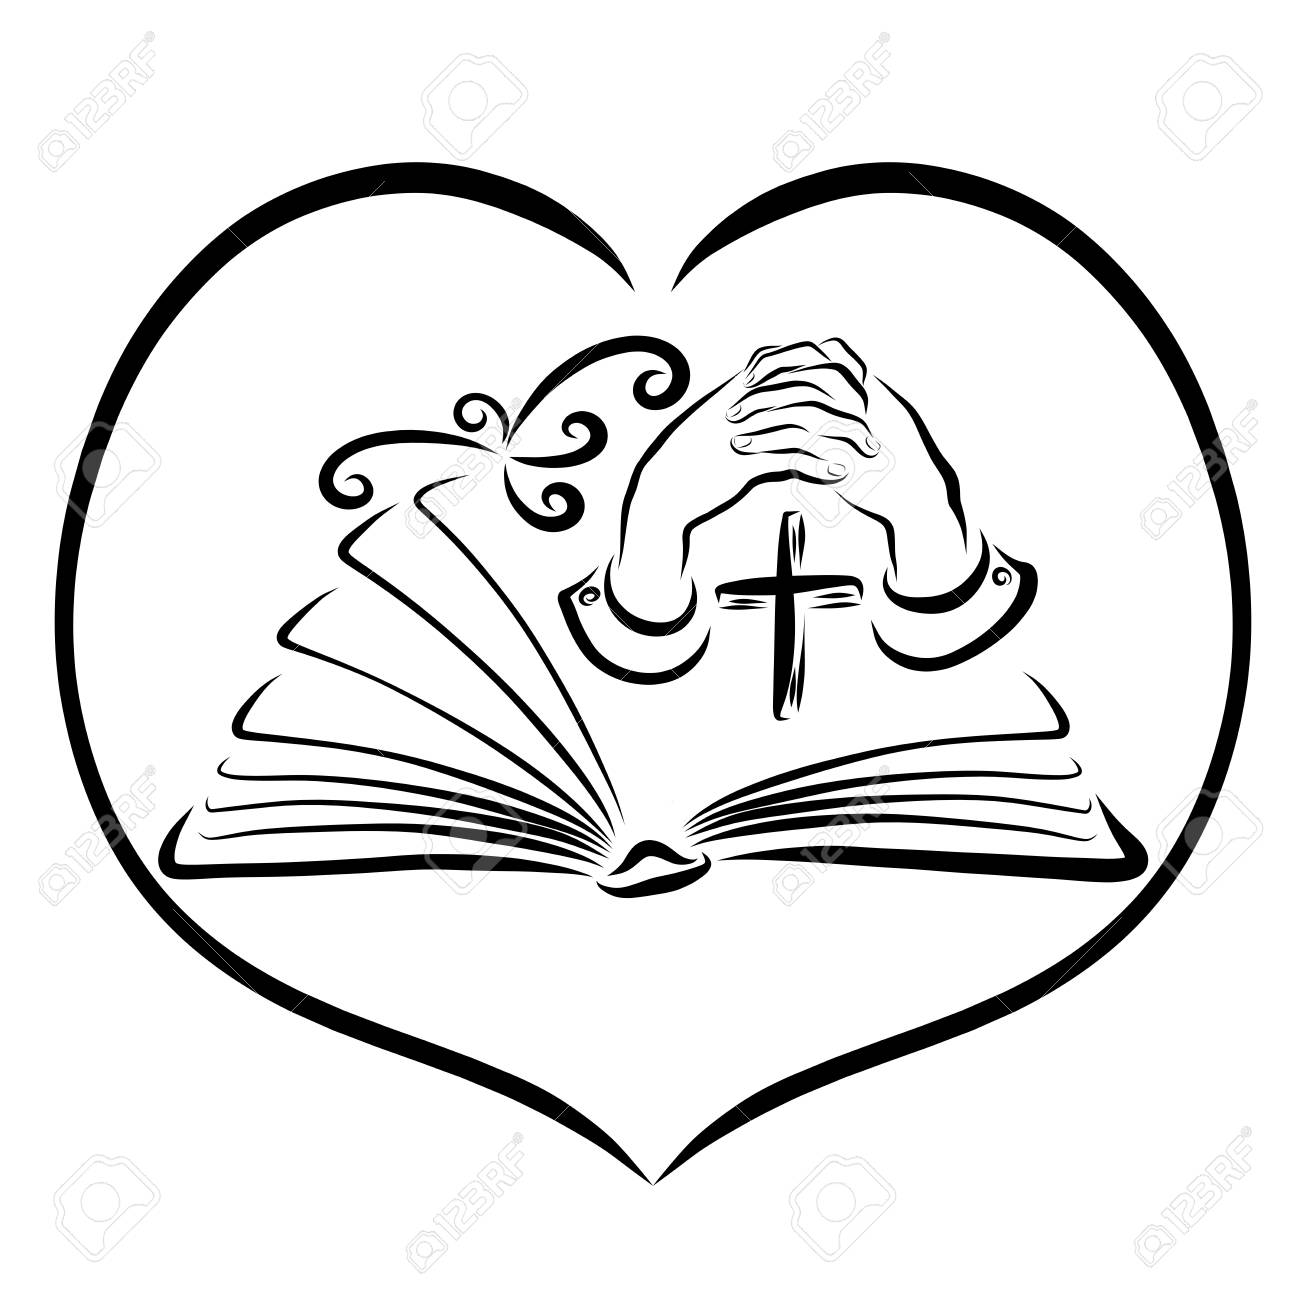 Prayer and Bible study, book, cross, hands and bird in heart